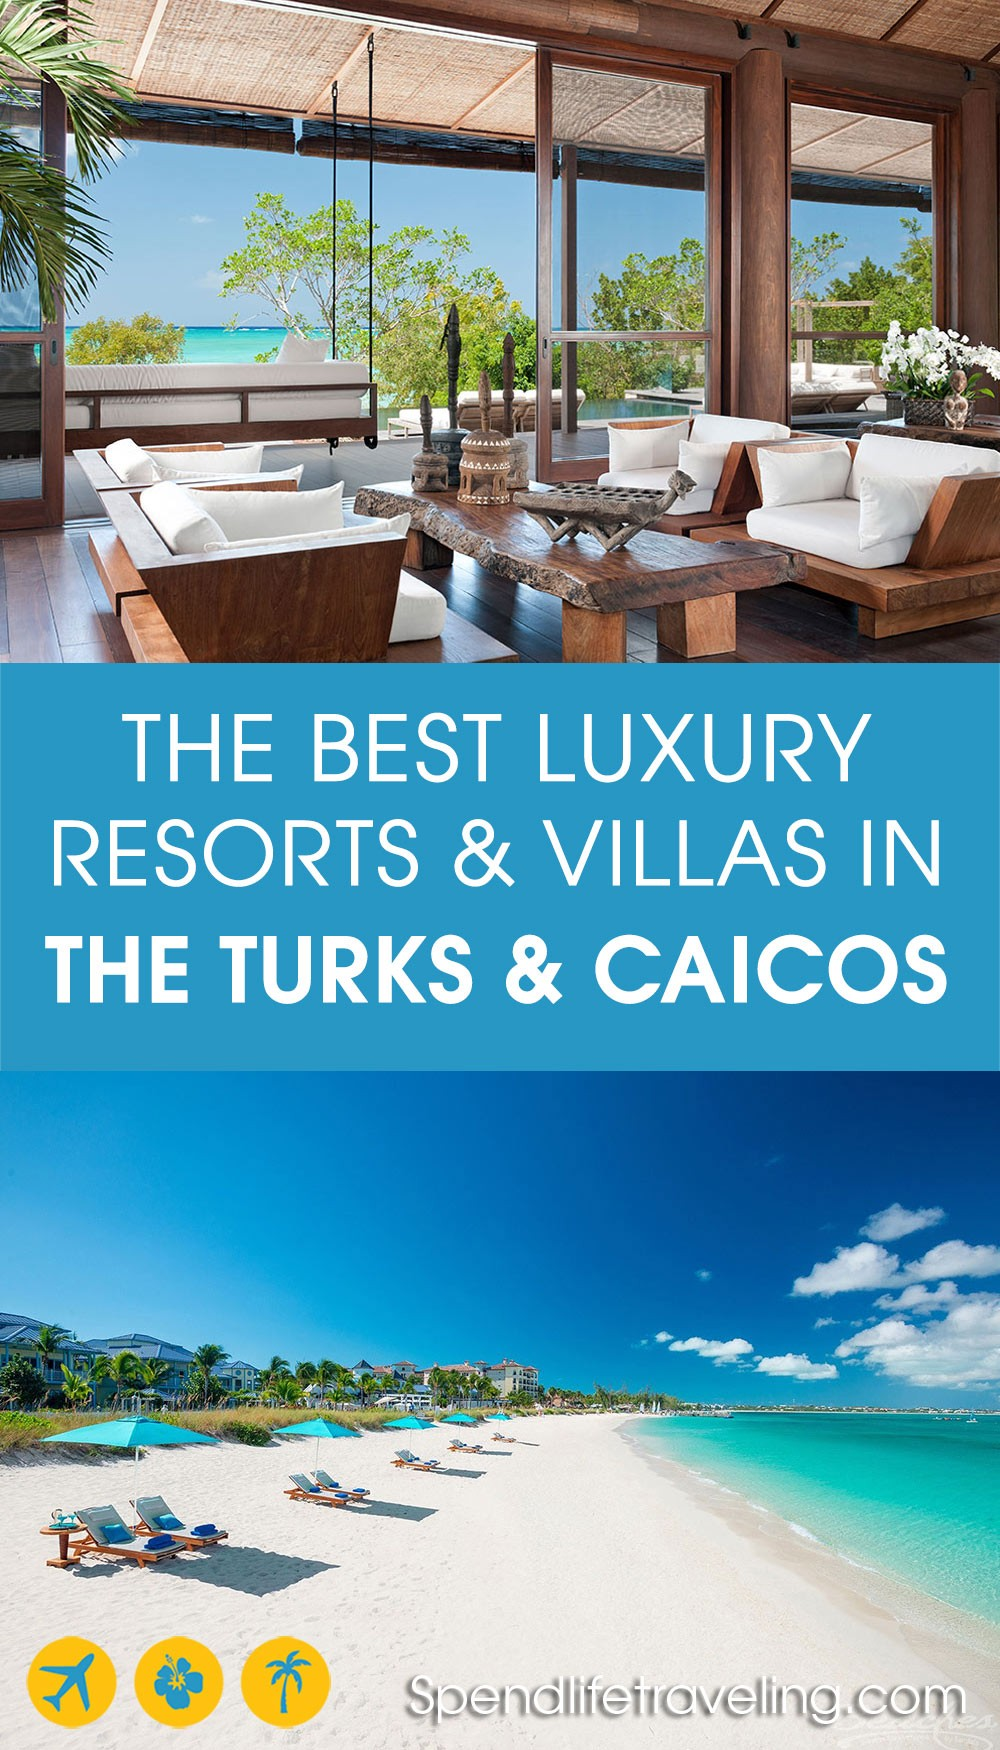 the best luxury resorts and villas in the Turks and Caicos Islands